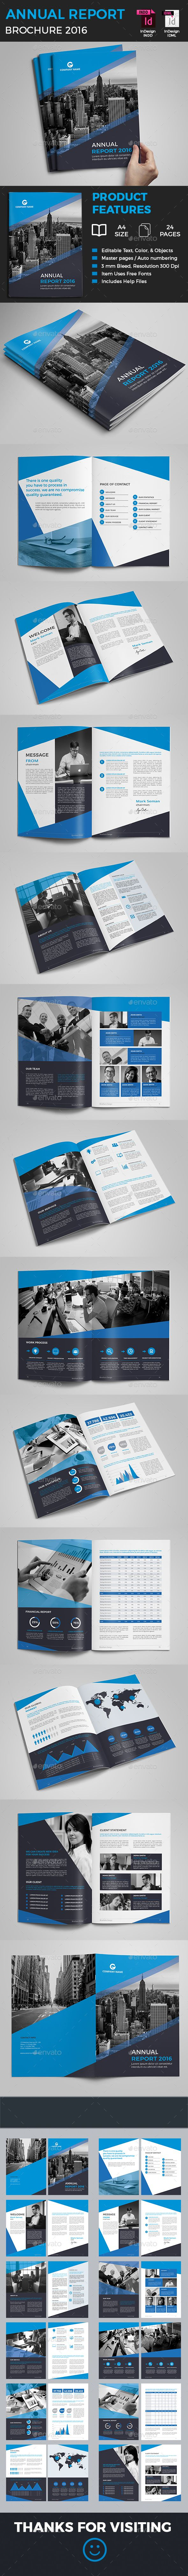 Annual Report Template InDesign INDD. Download here: http://graphicriver.net/item/annual-report/16817608?ref=ksioks